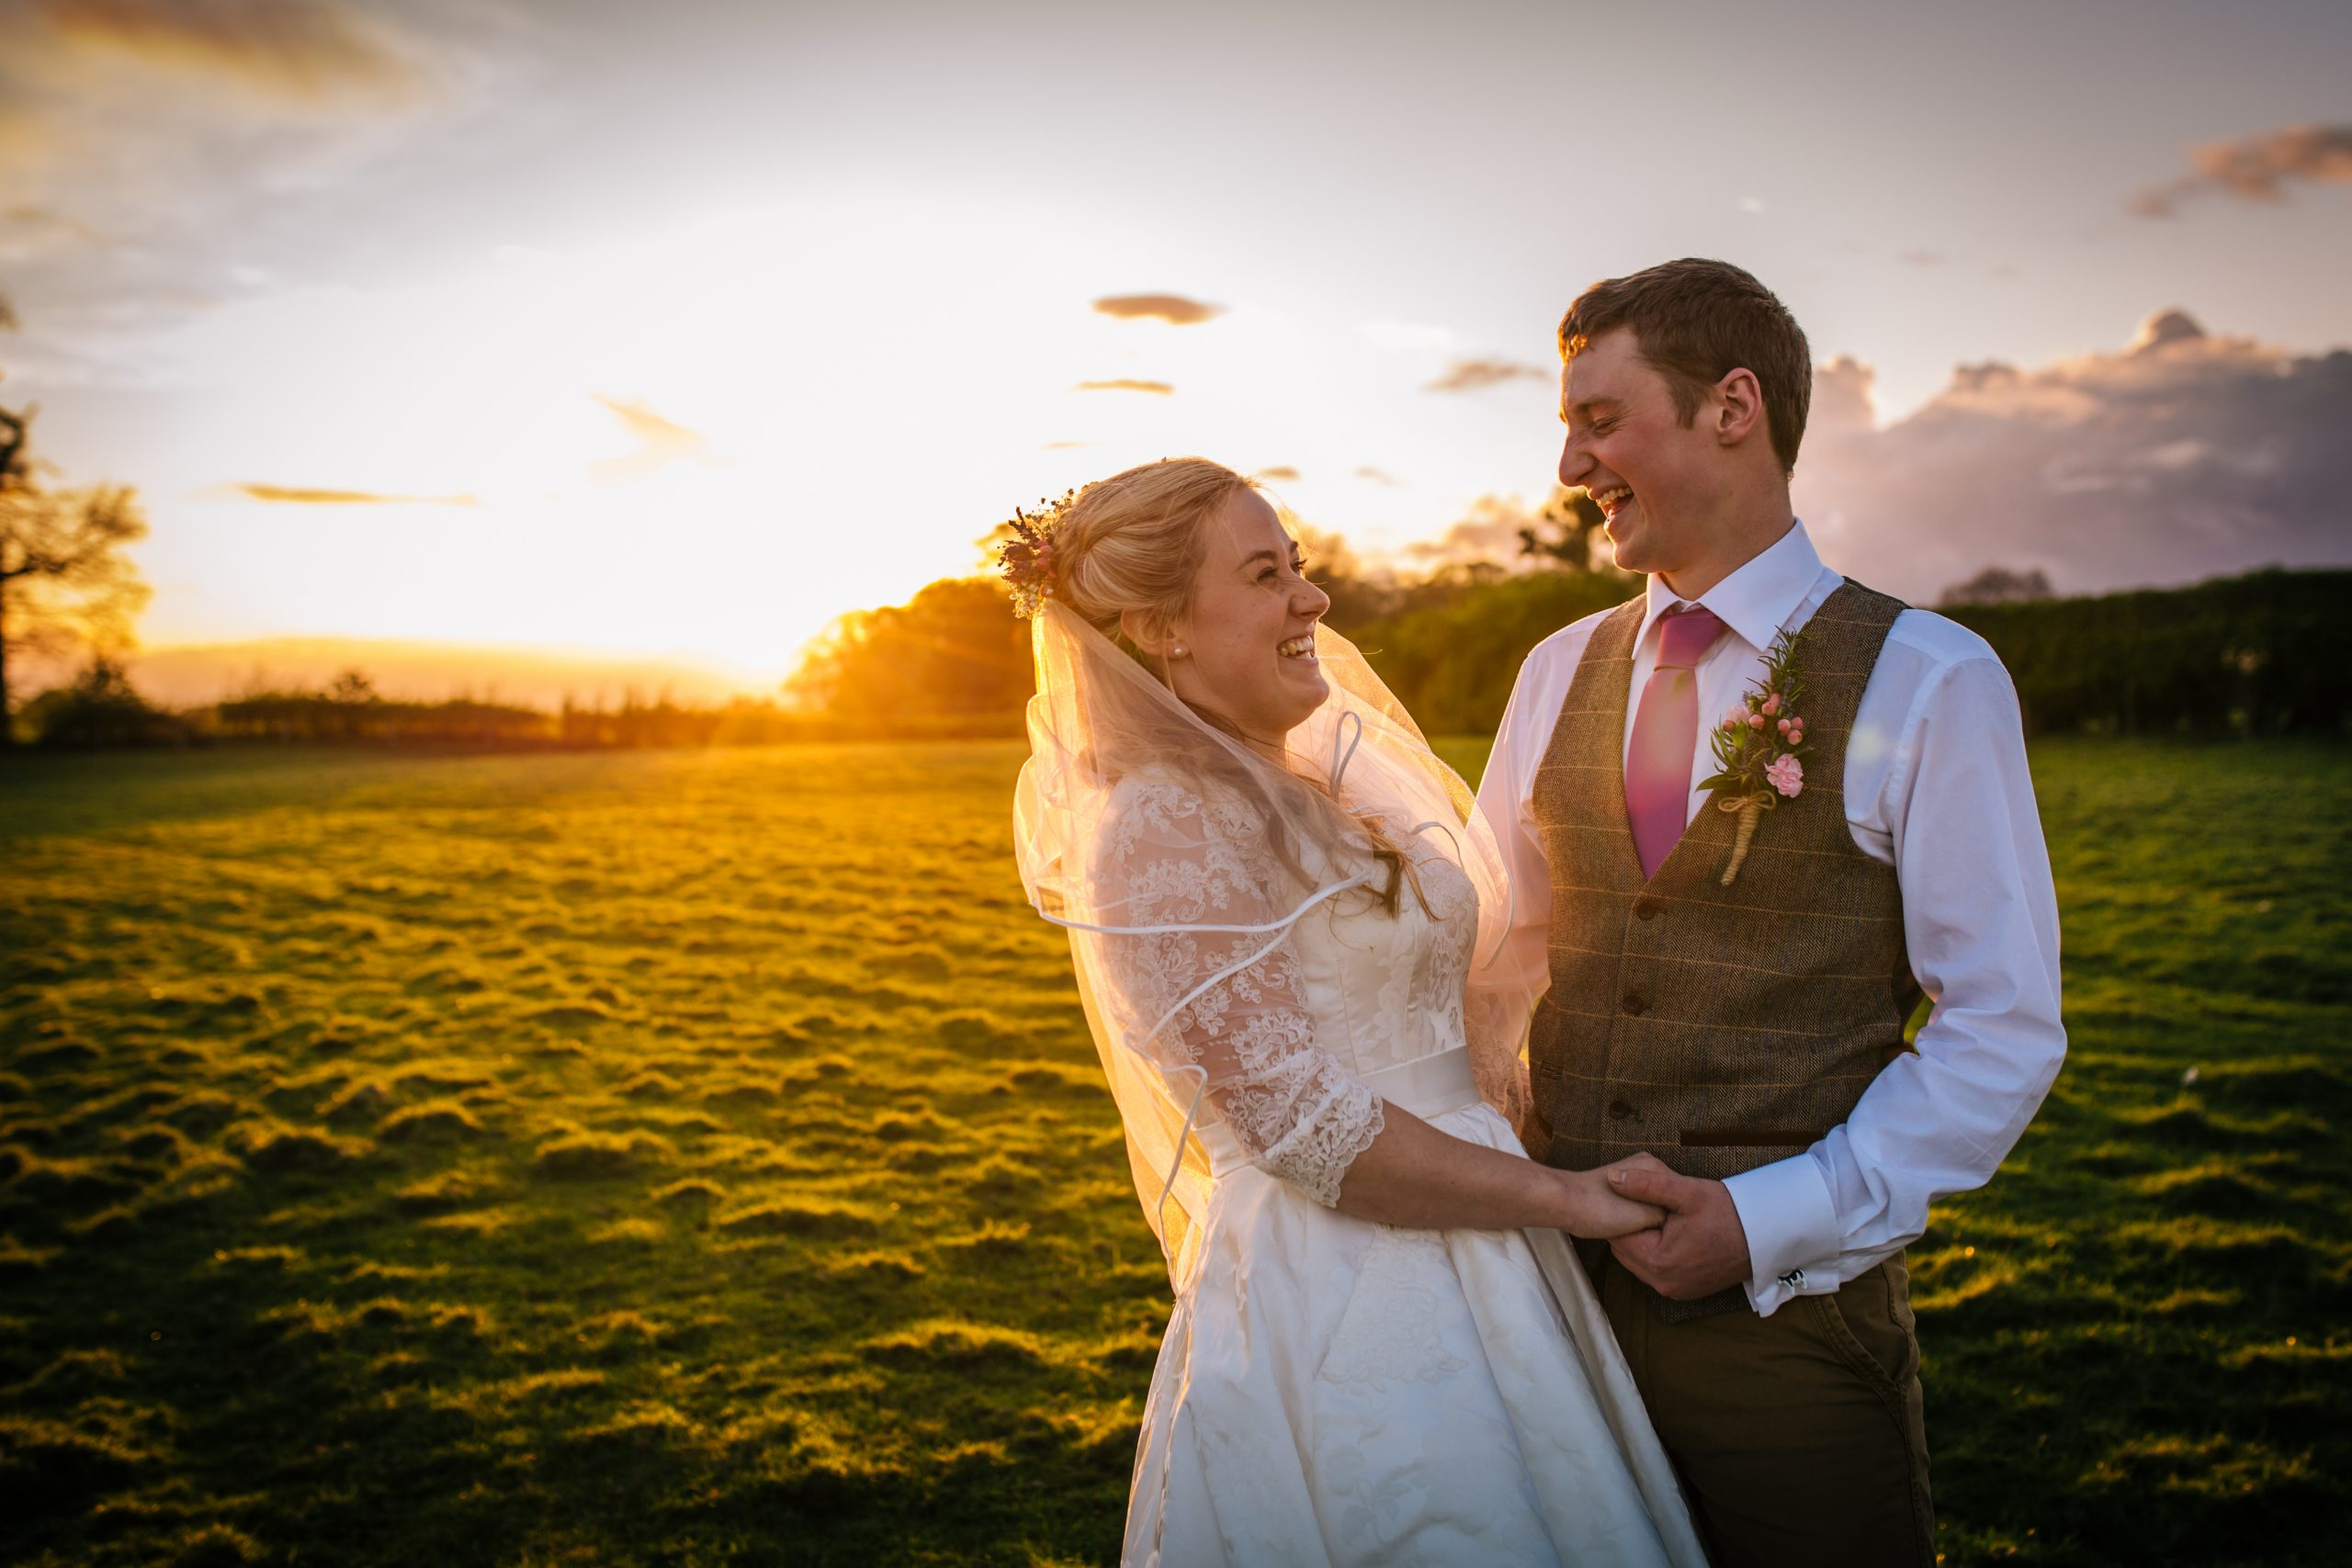 Sandhole barn Wedding photographed by Joanna Eardley